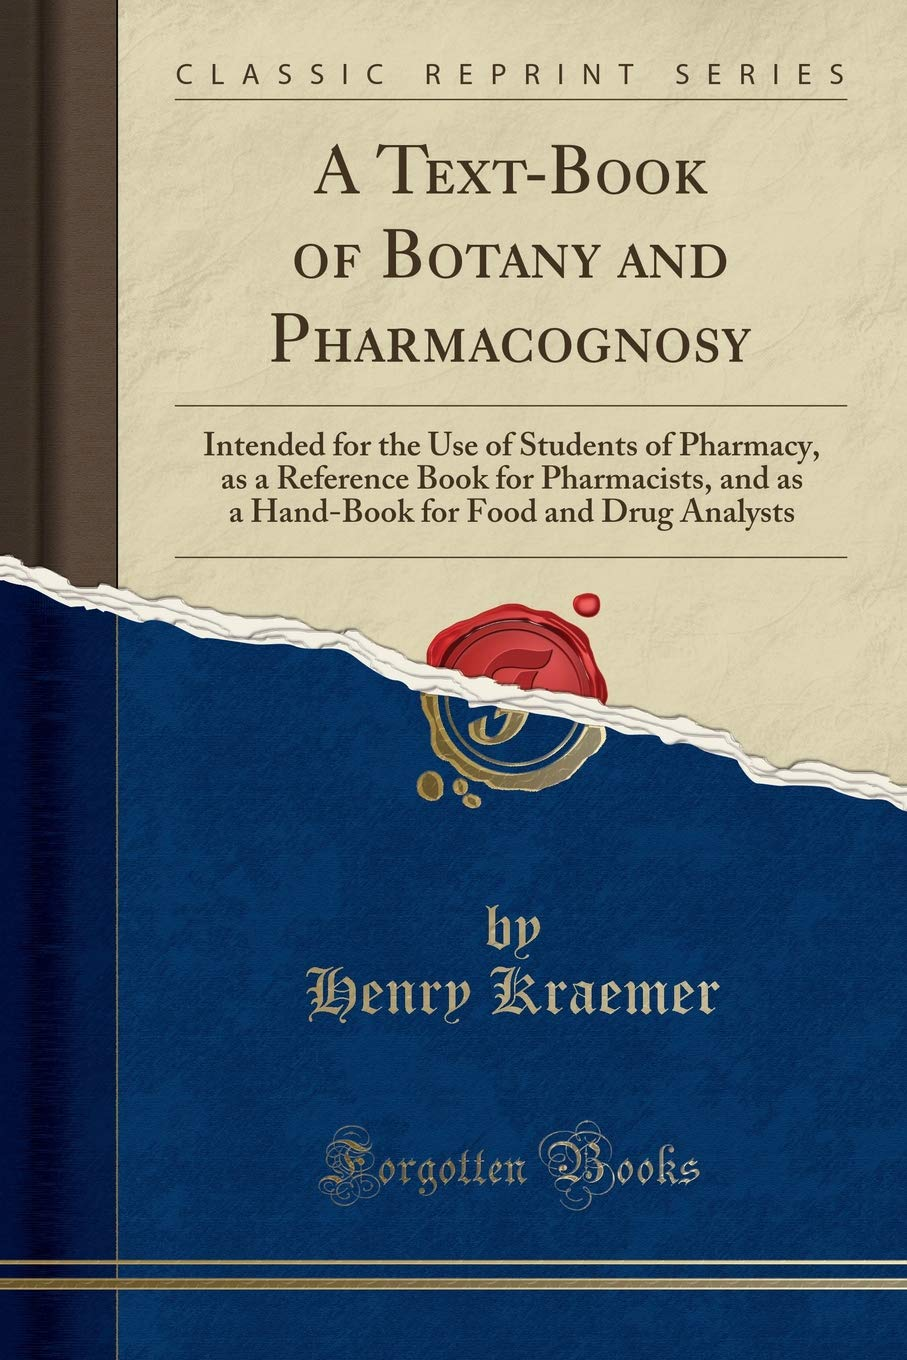 A Text-Book of Botany and Pharmacognosy: Intended for the Use of Students of Pharmacy, as a Reference Book for Pharmacists, and as a Hand-Book for Food and Drug Analysts (Classic Reprint) PDF